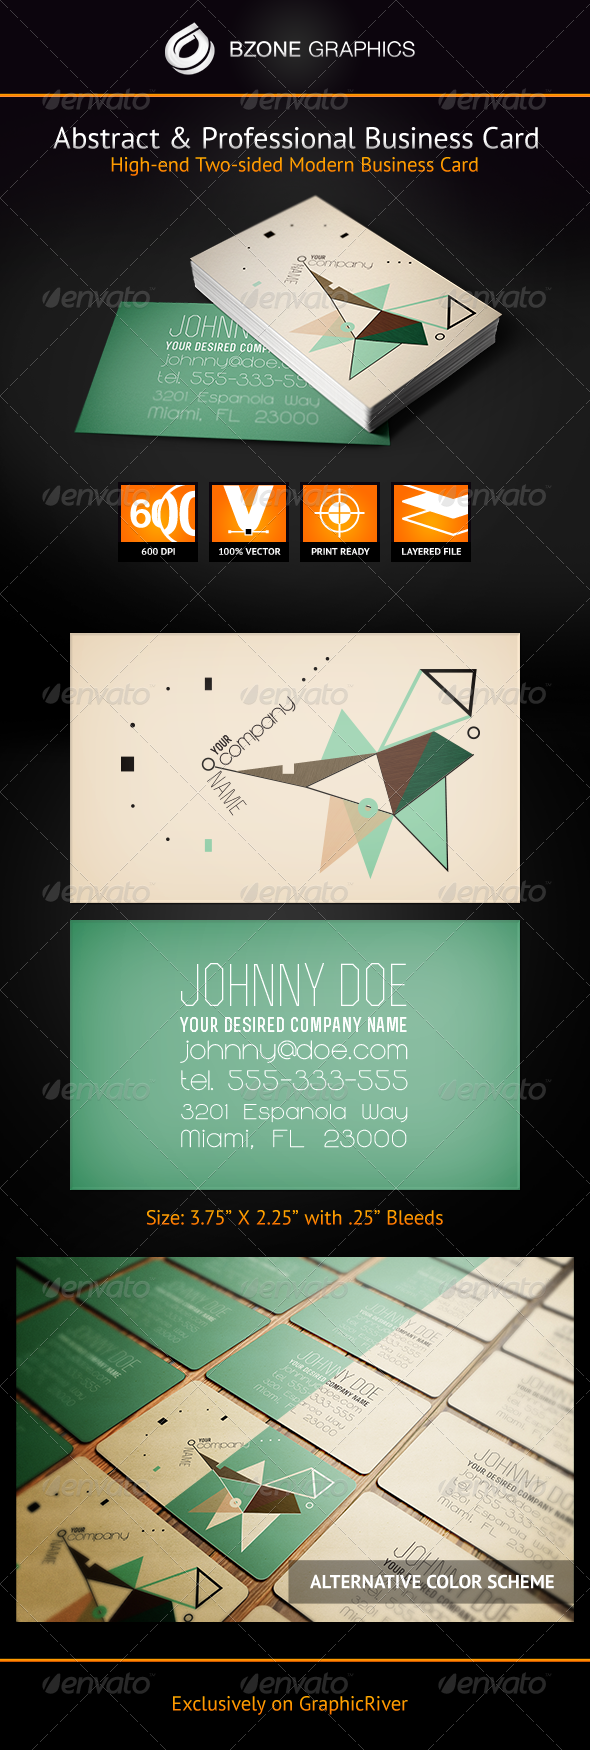 GraphicRiver Abstract & Professional Business Card 3763505